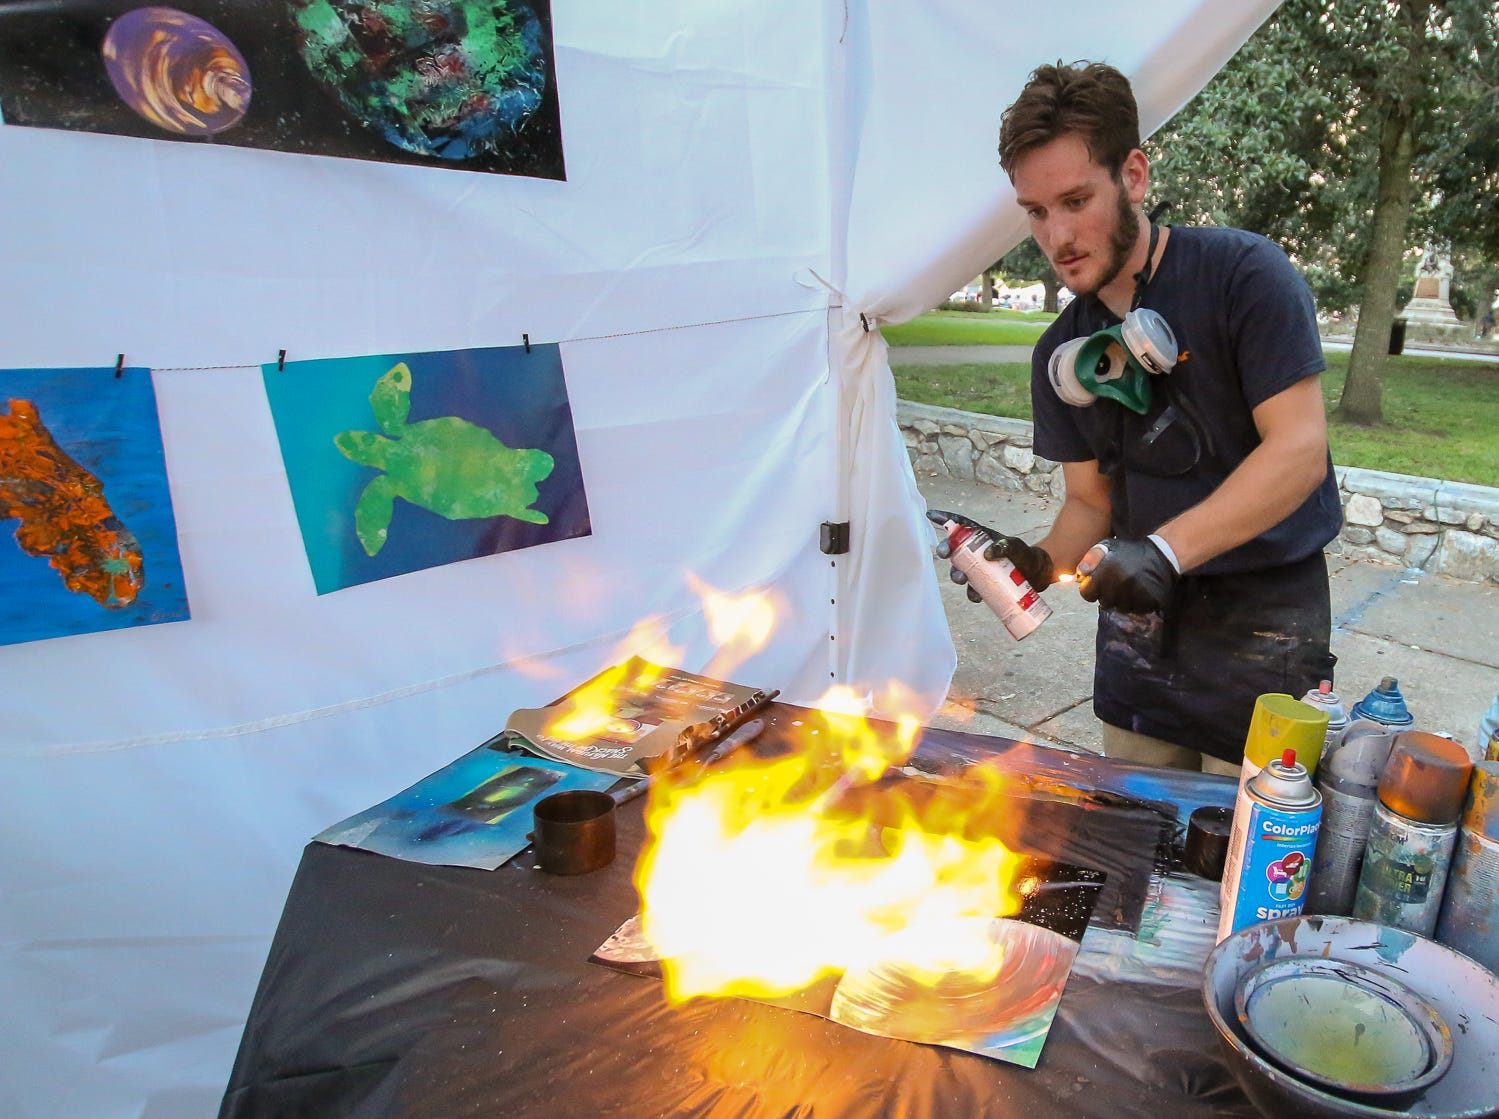 Jordan Wallce sprays fire across one of his paintings during Gallery Night on Friday, October 19, 2018.